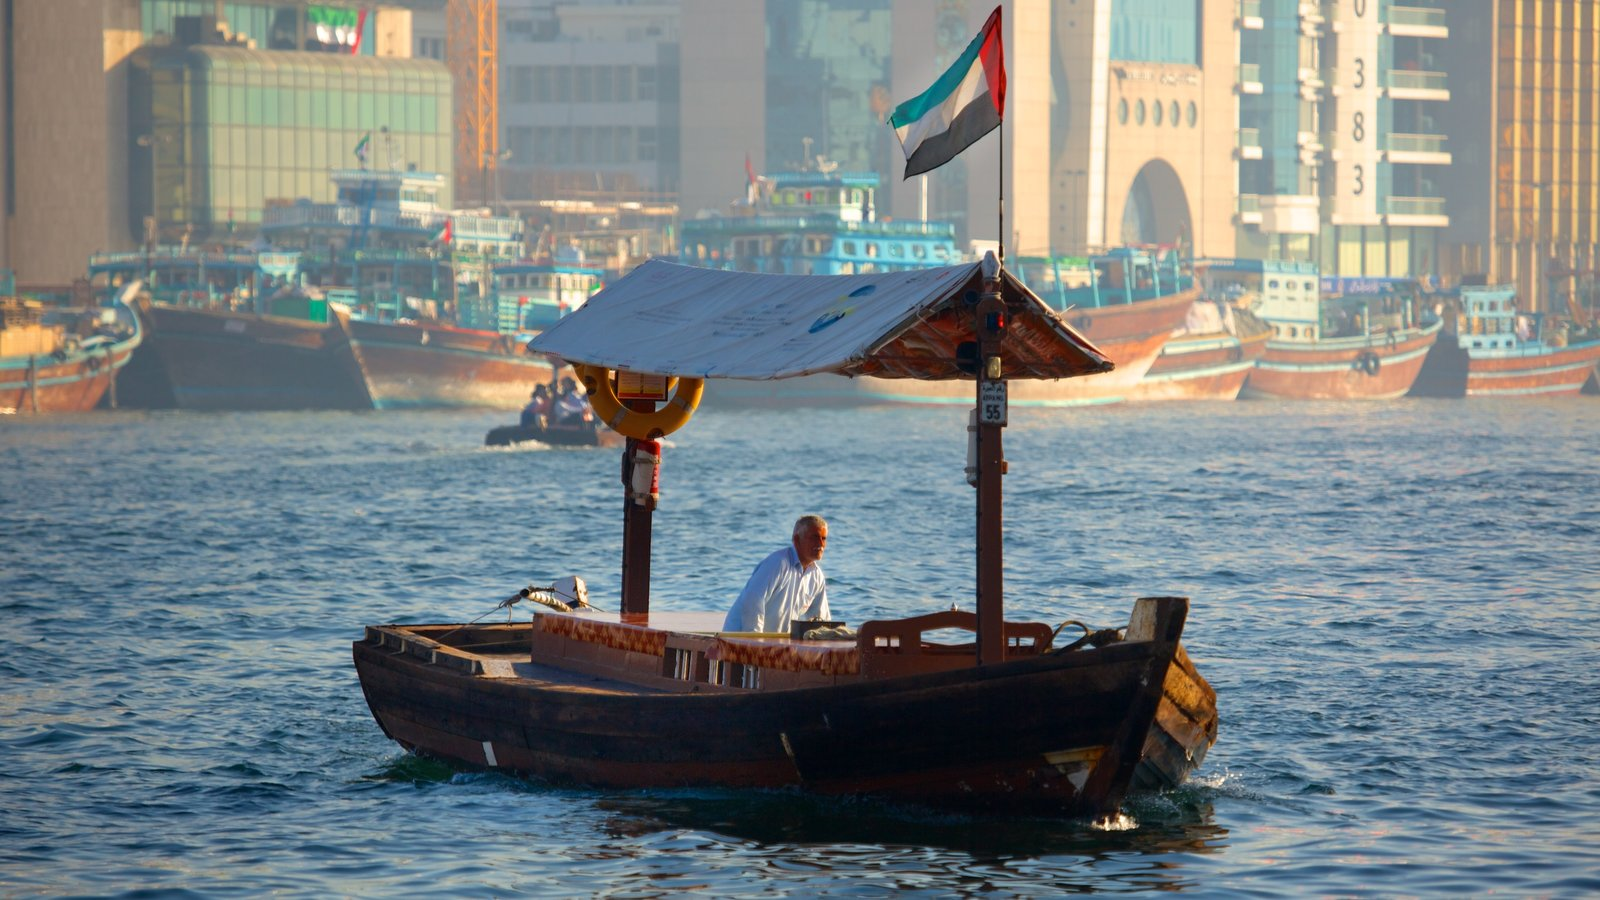 Dubai Creek featuring boating and a river or creek as well as an individual male